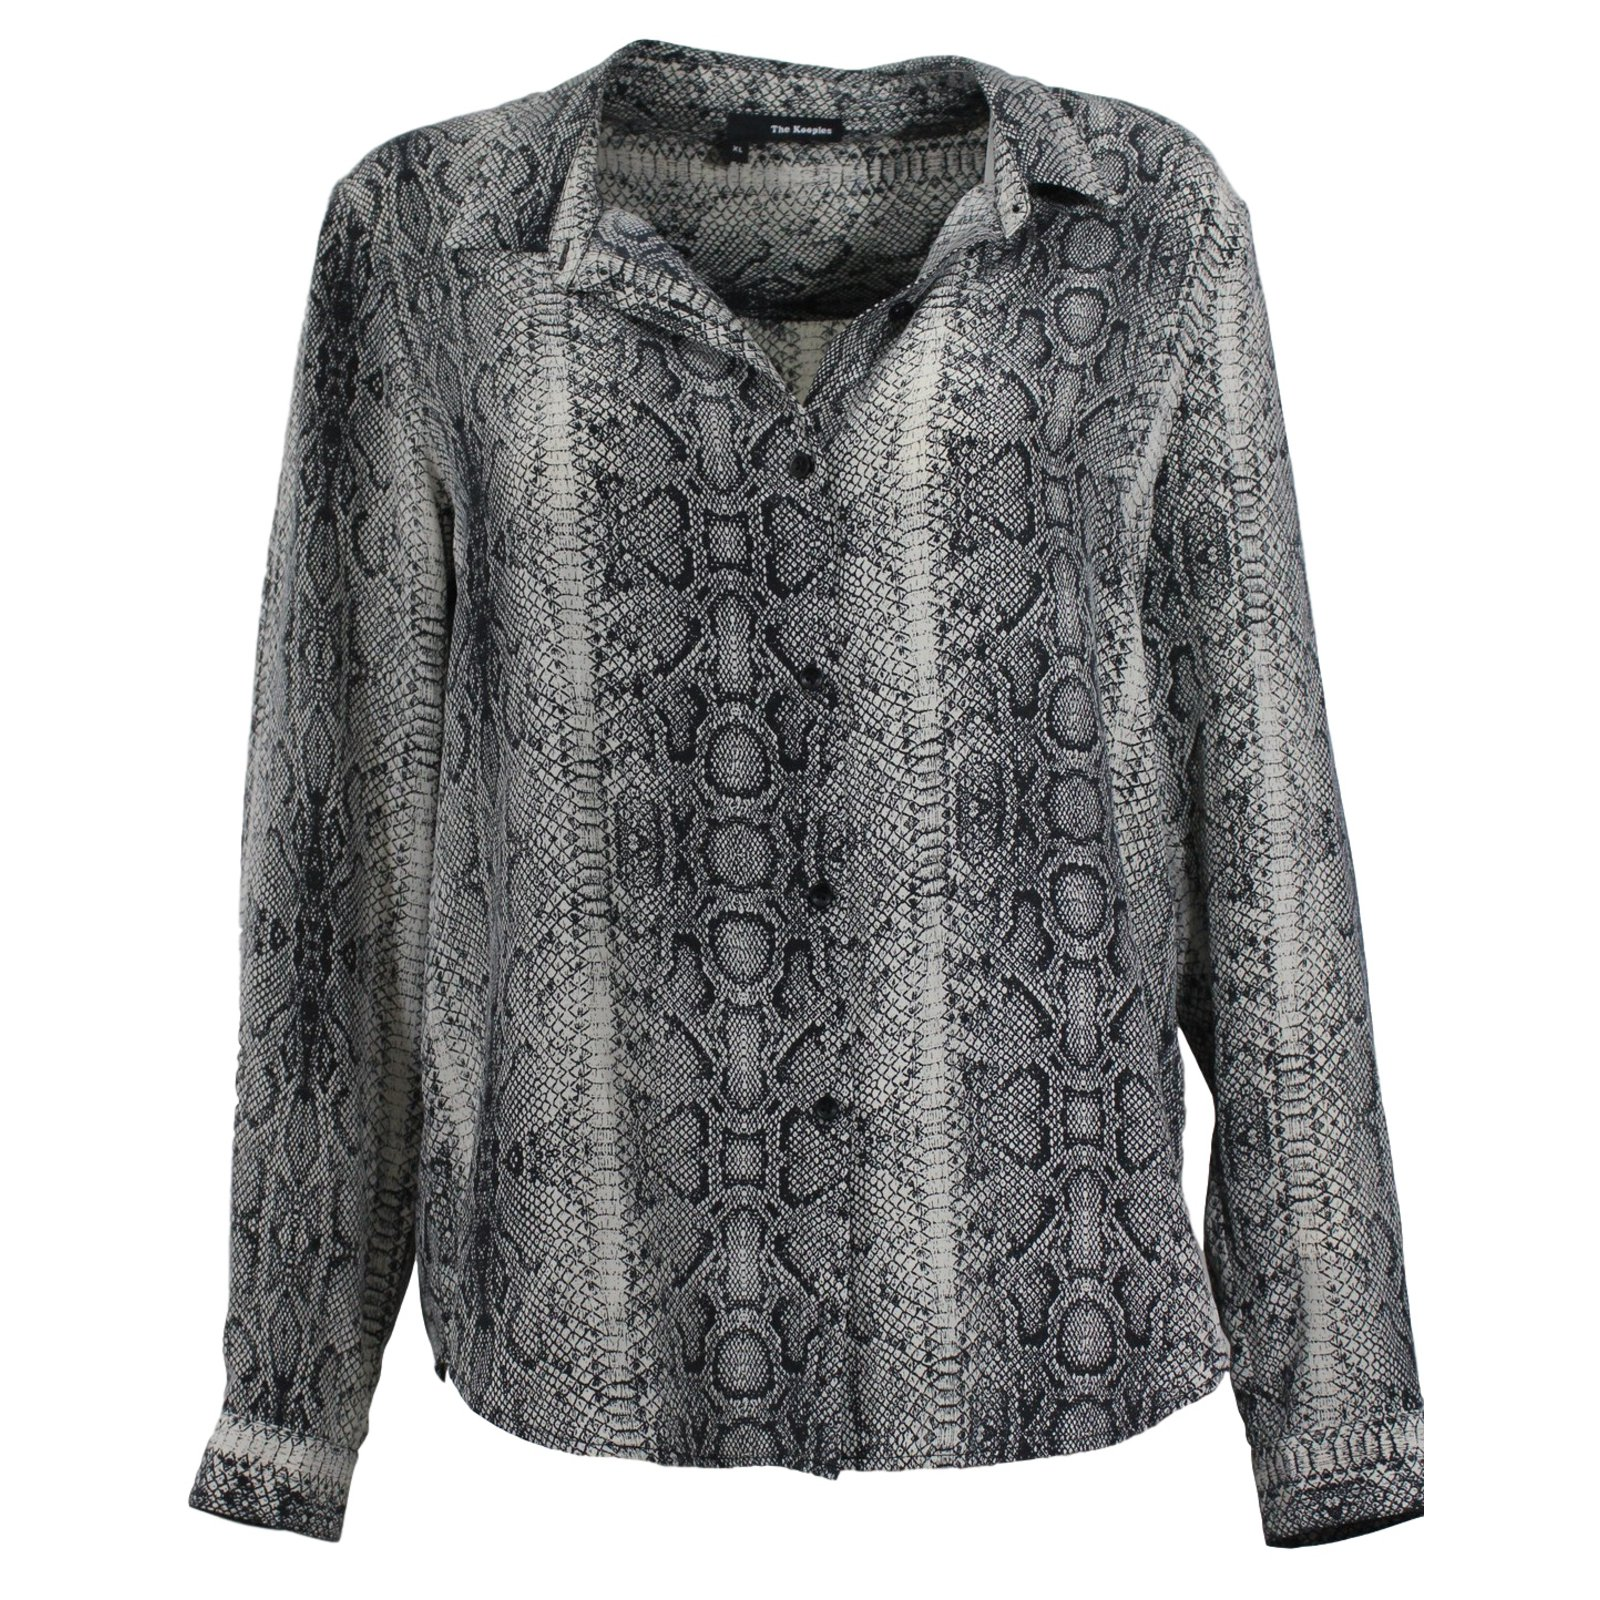 eb334e3aea The Kooples Tops Tops Silk Python print ref.11458 - Joli Closet